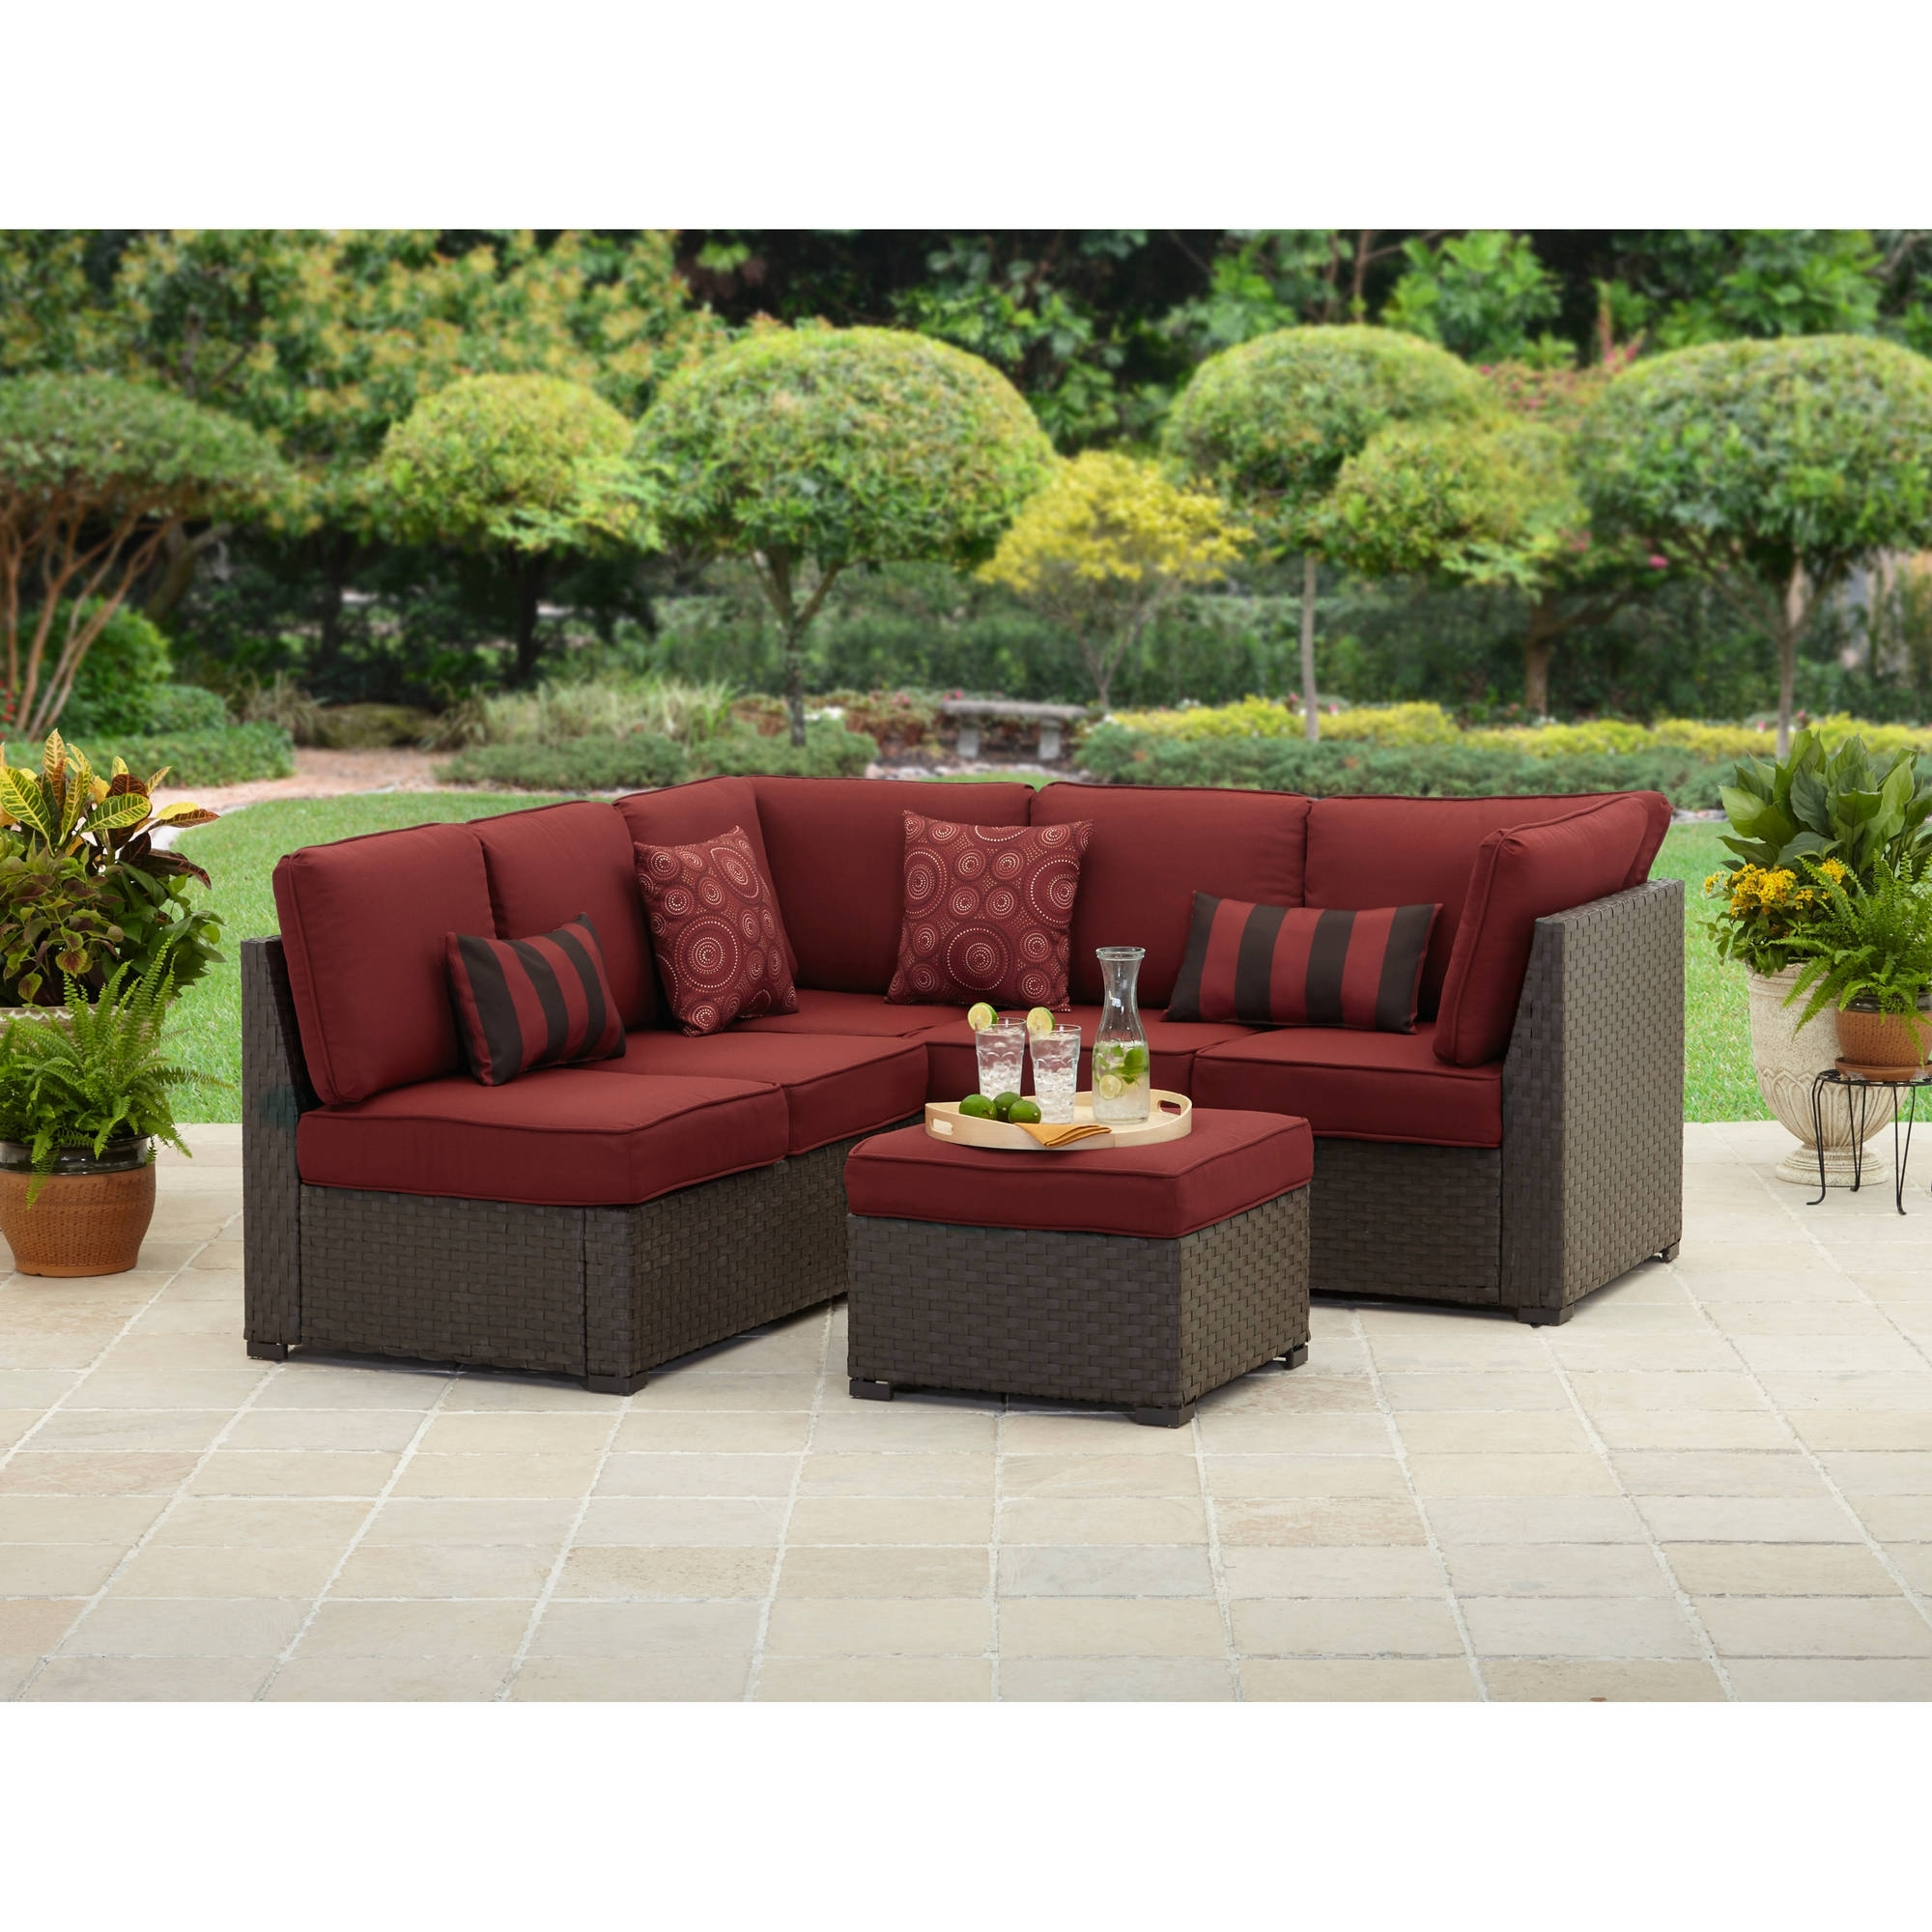 Favorite Sectional Sofas At Bc Canada With Regard To Sofa : Outdoor Furniture Rattan Sofa Outdoor Wicker Furniture (View 18 of 20)